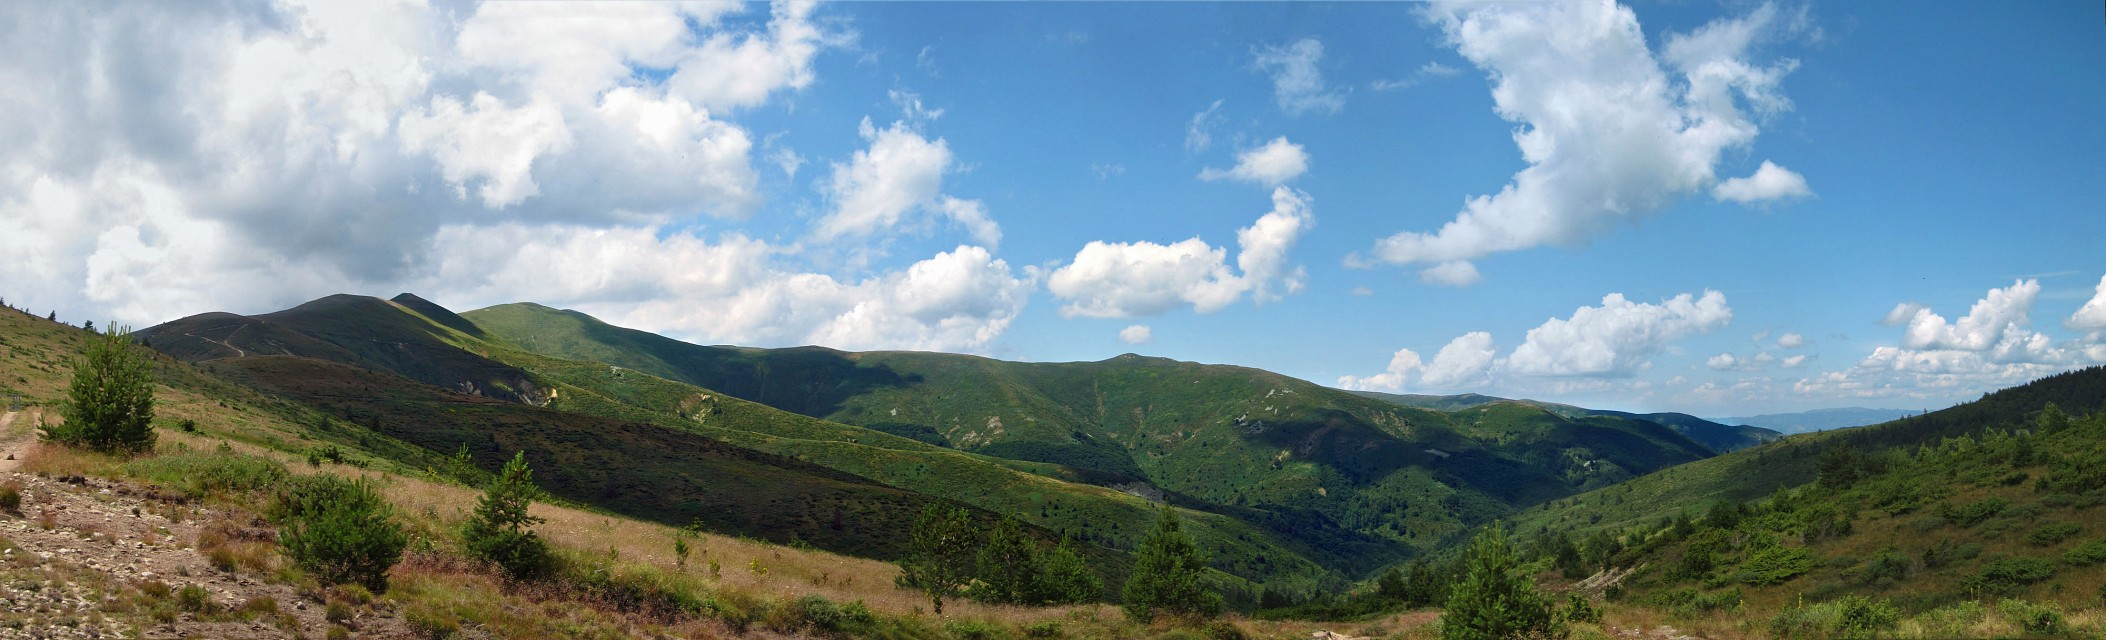 Osogovo mountain - Osogovo